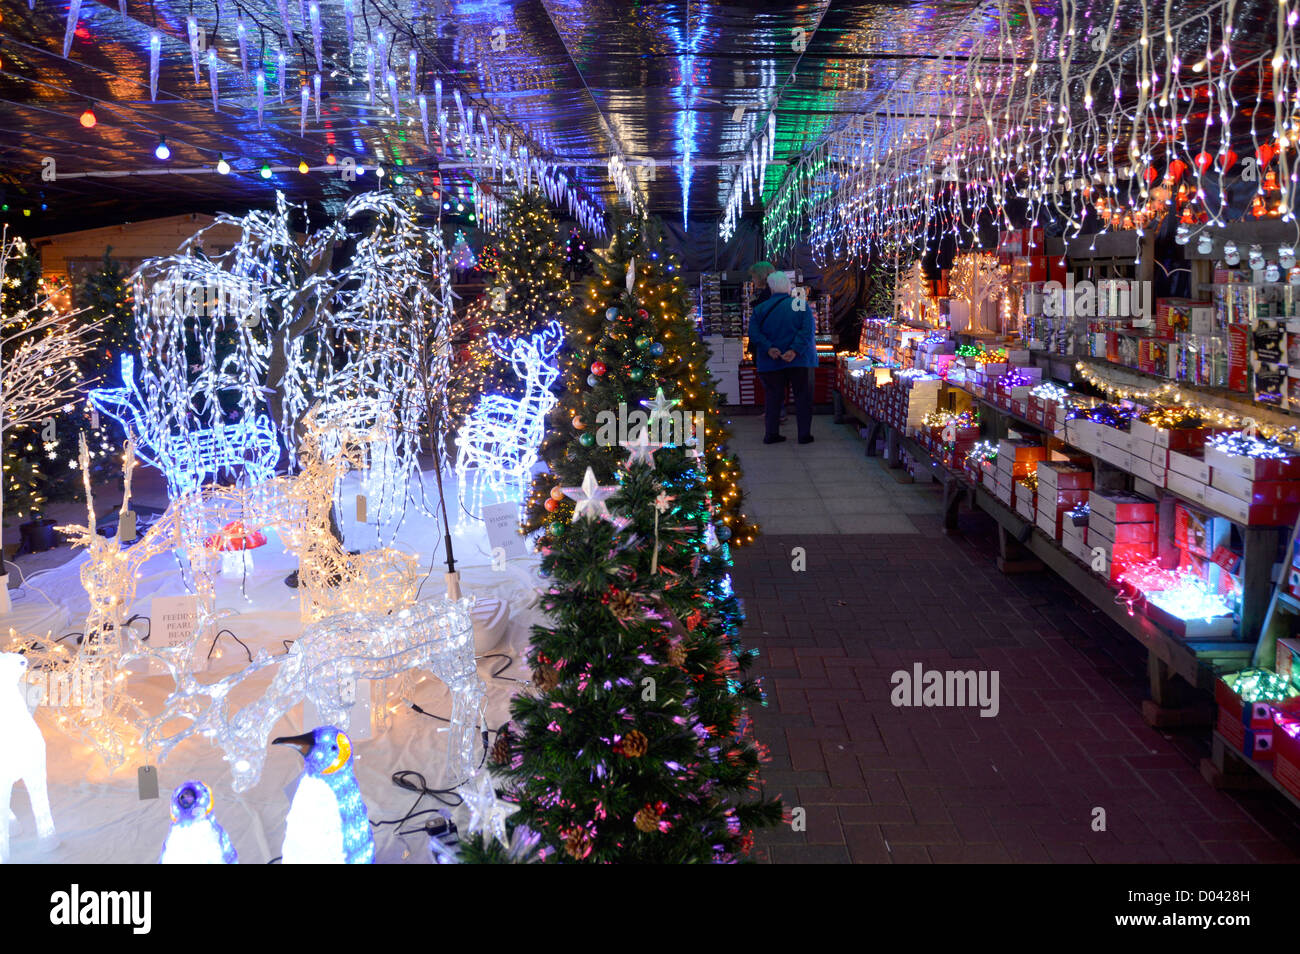 Display of illuminated Christmas decorations on sale in a ...